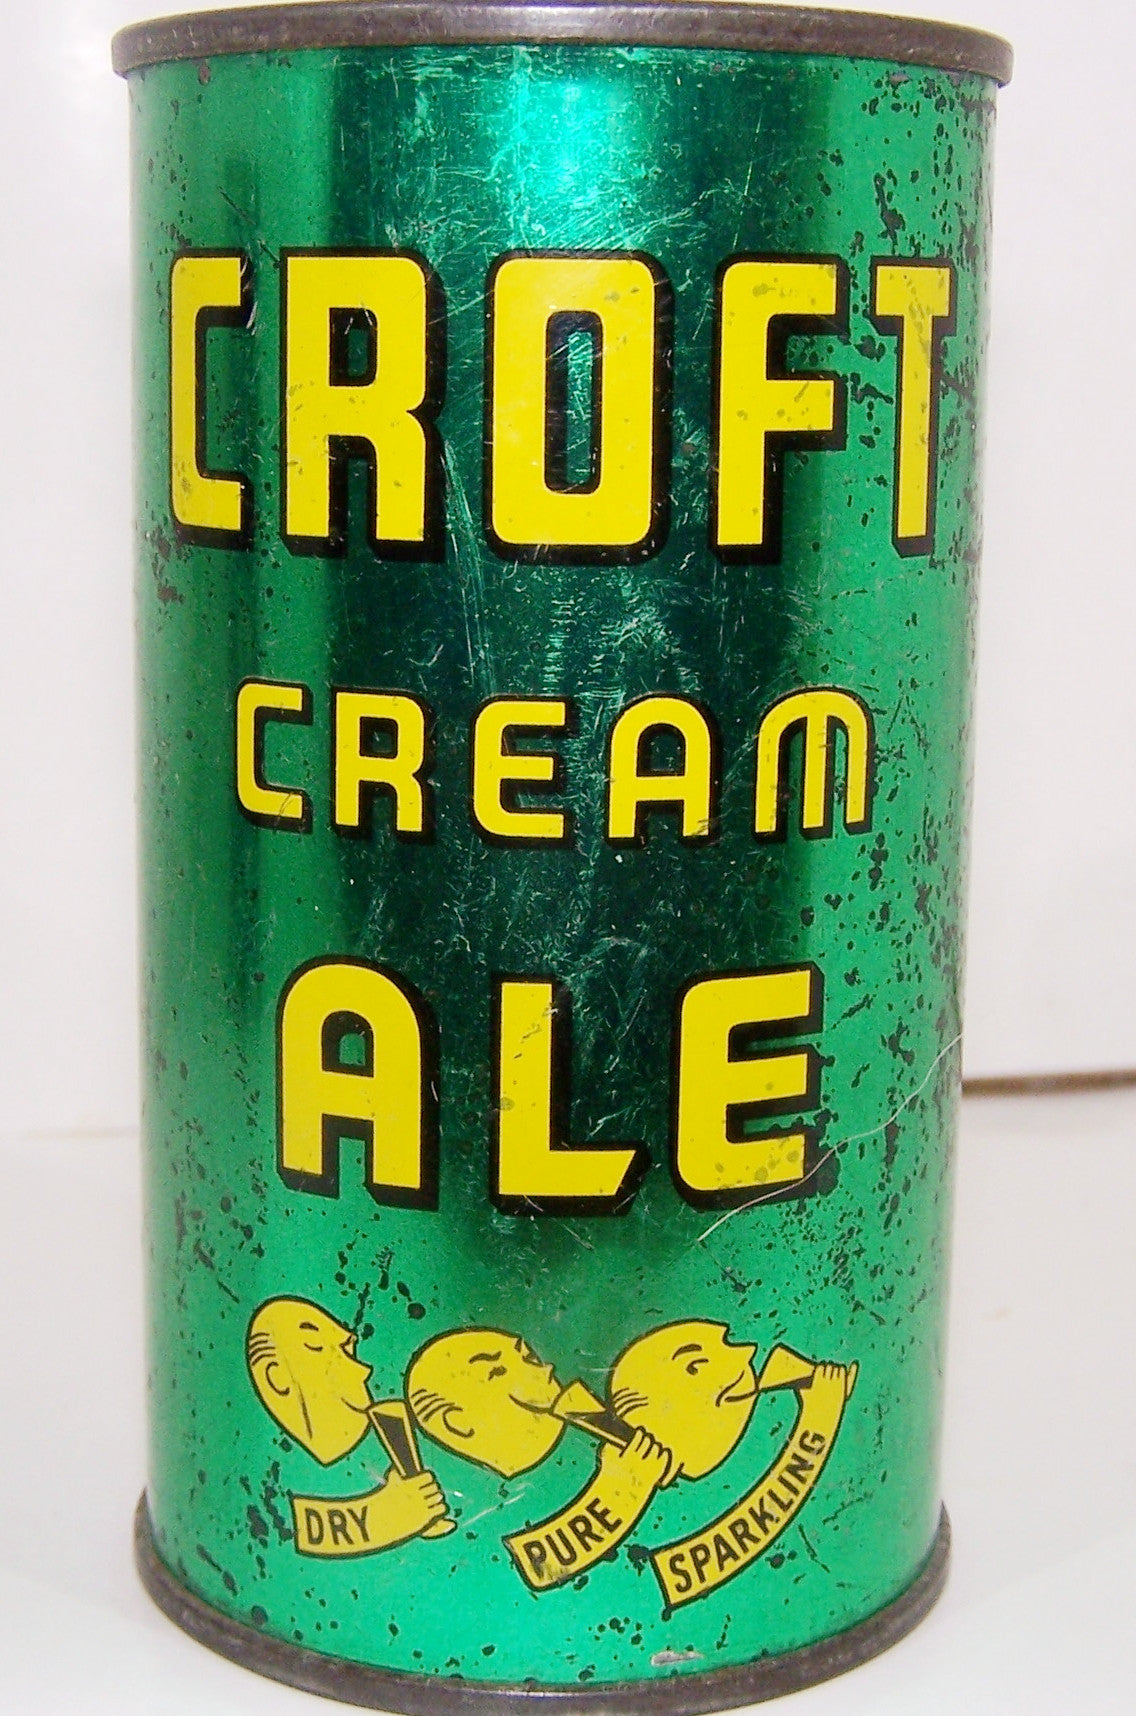 Croft Cream Ale, USBC 52-23, Four Products, Grade 1- Sold 4/19/15